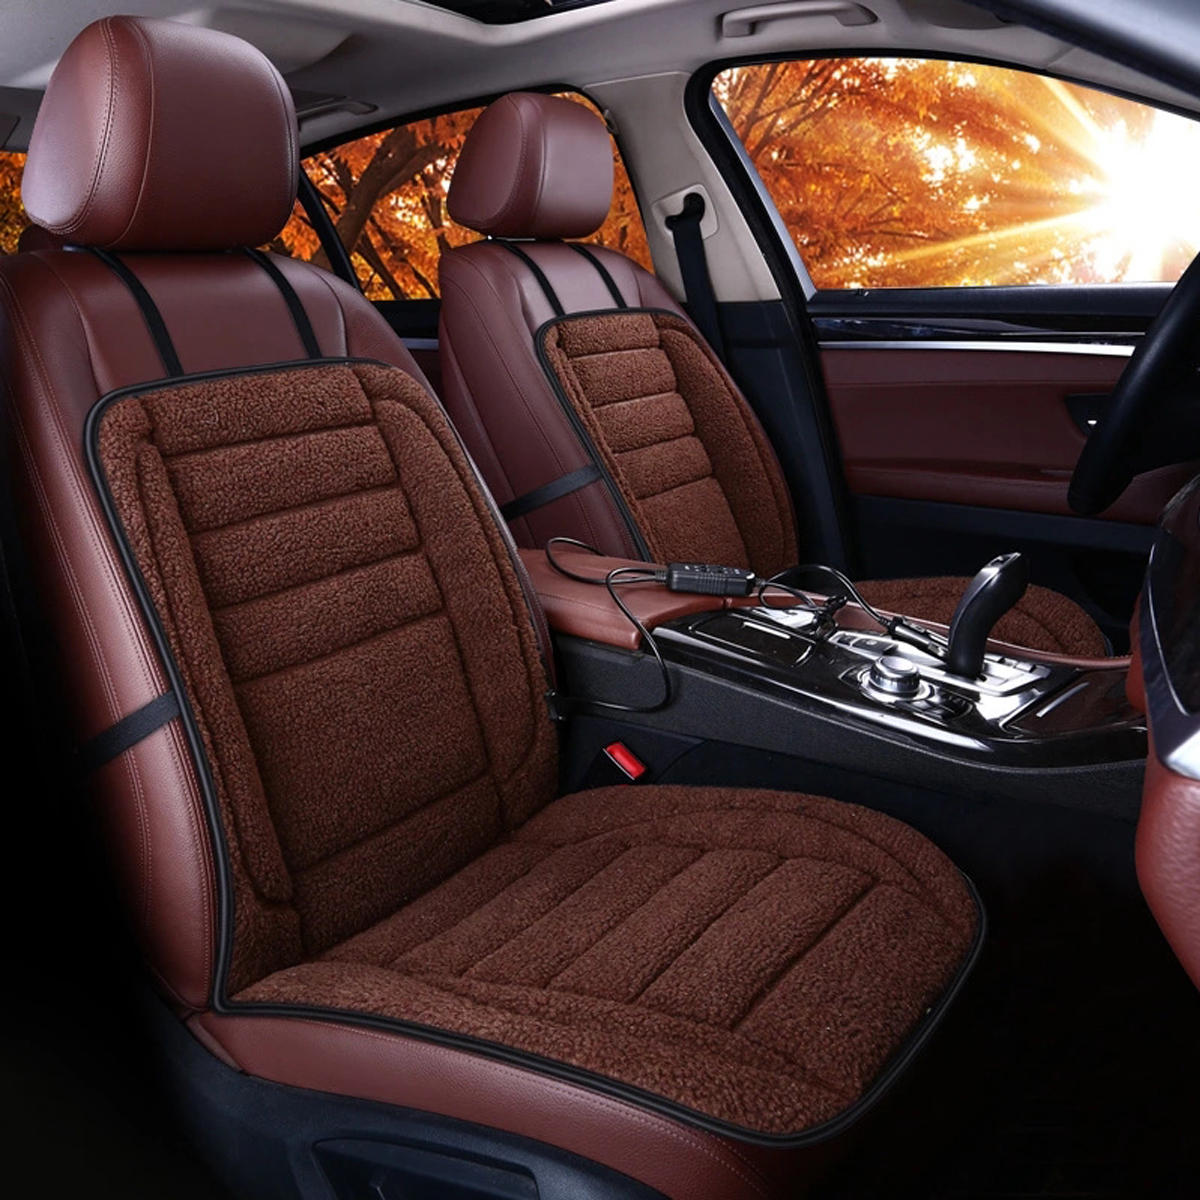 12v Car Van Front Seat Heated Cushion Warmer Winter Household Cover Electric Heating Mat Brown Cod